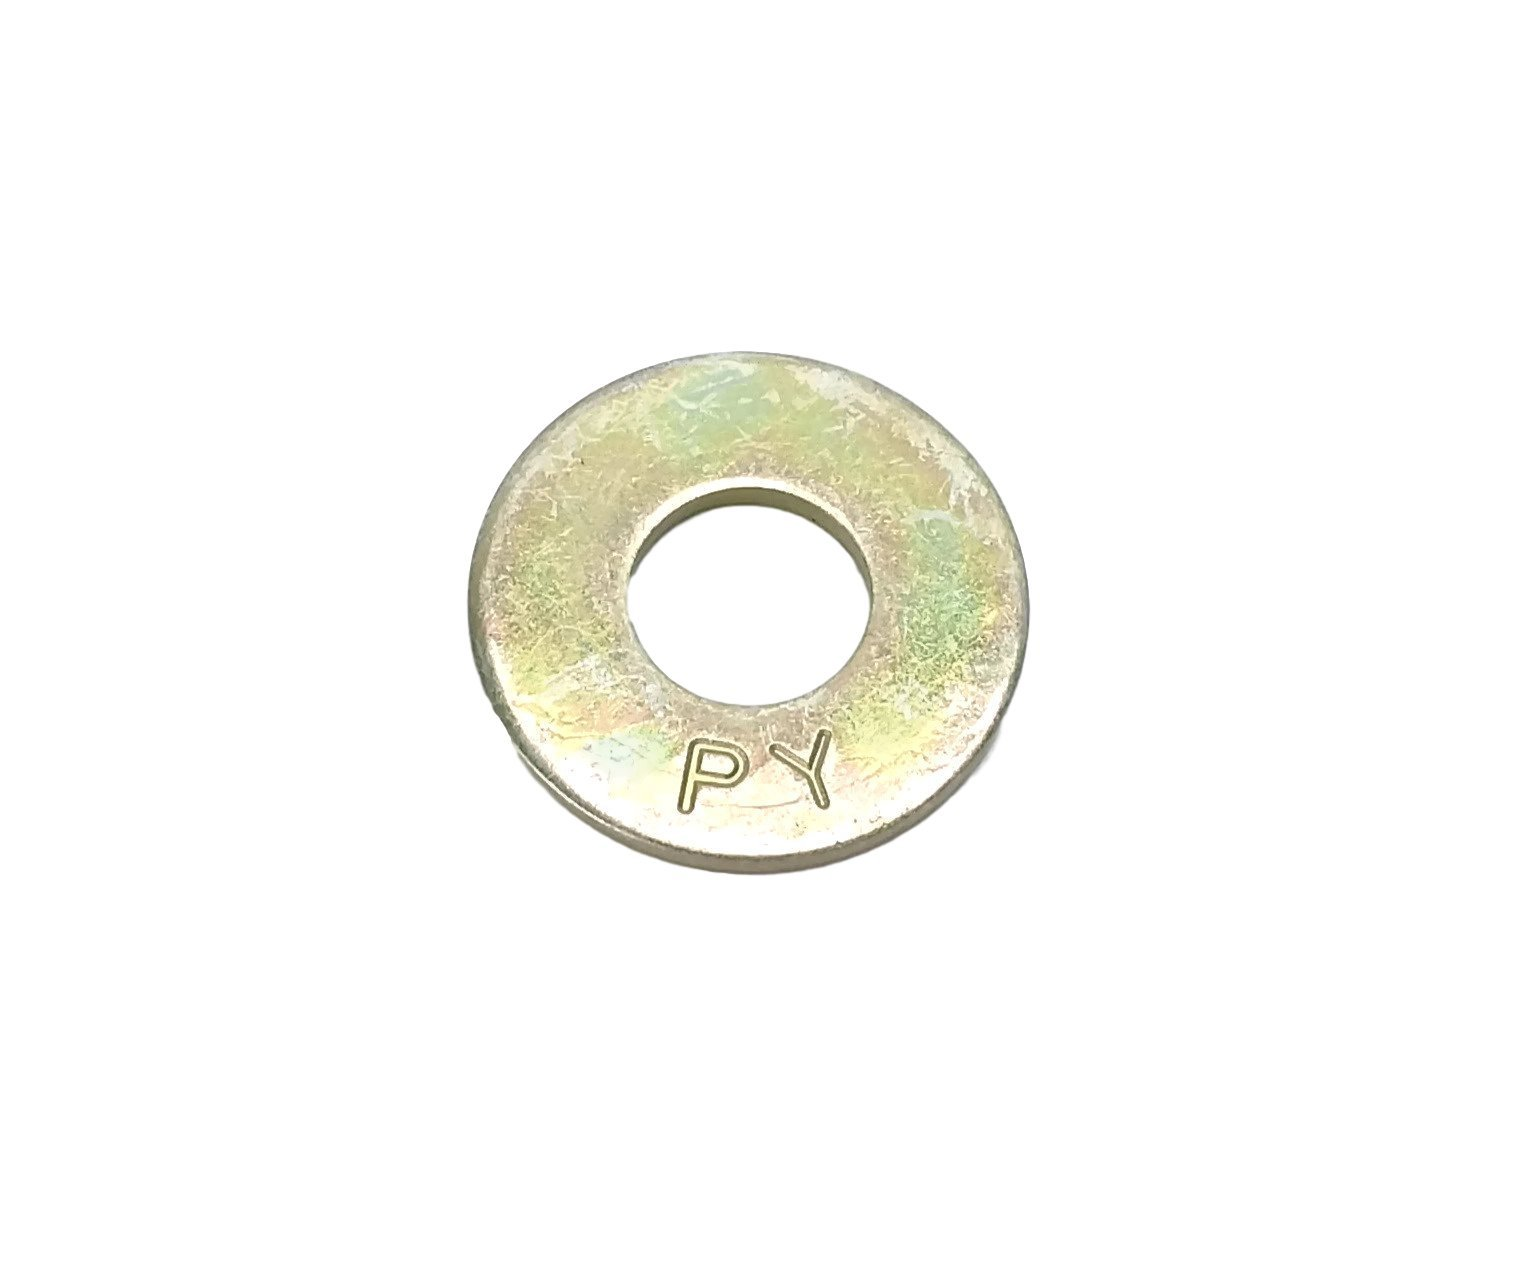 50pcs More Selections in Listing 5//16 LOCKWASHER 5//16 Hardened Grade 8 Lock Washer